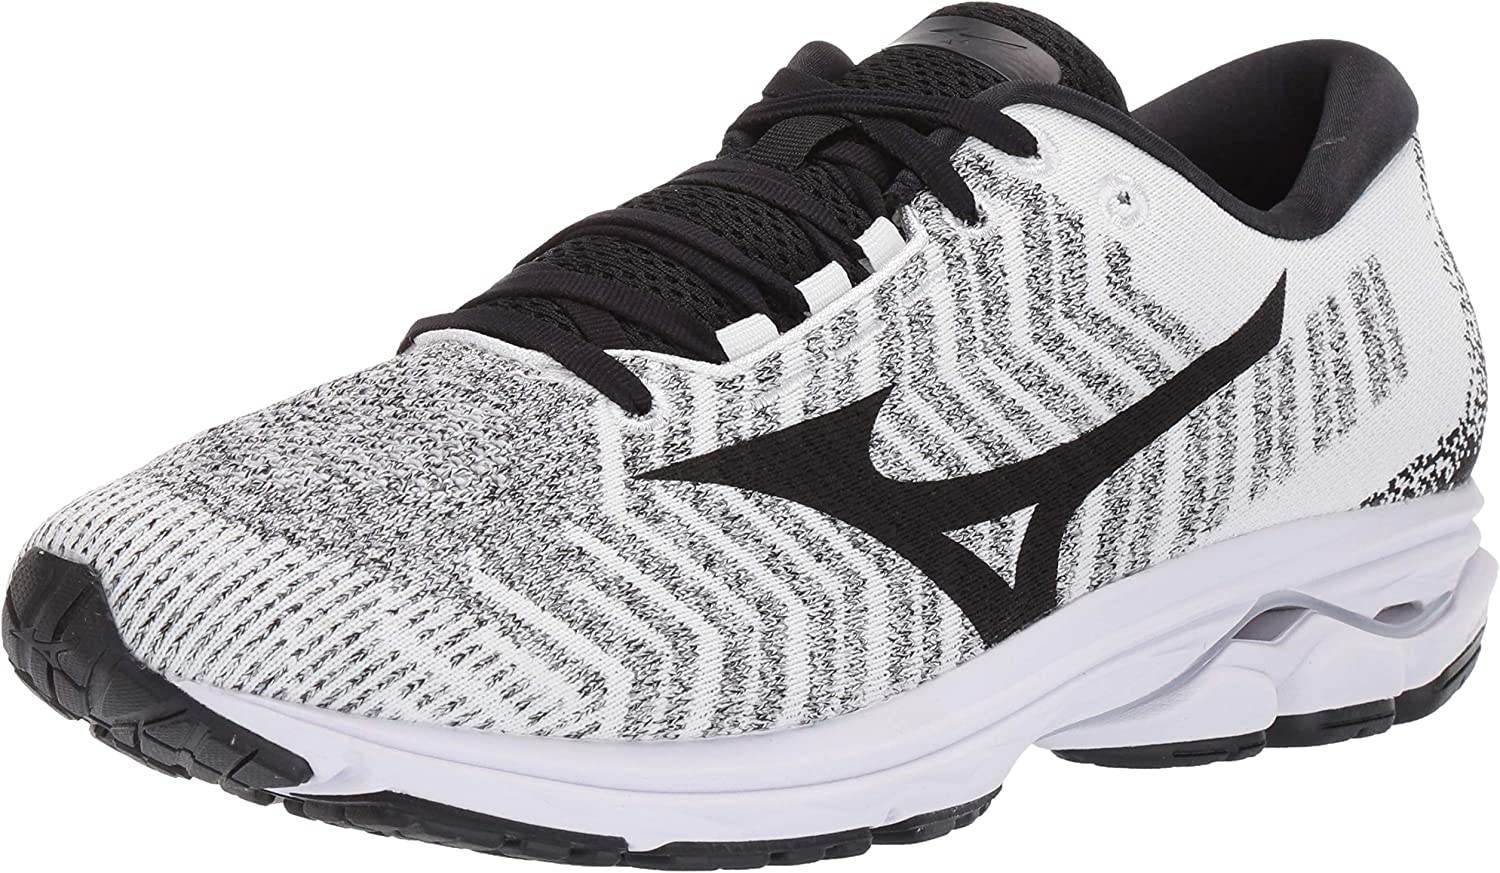 Mizuno Men s Wave Rider 23 Waveknit Running Shoe